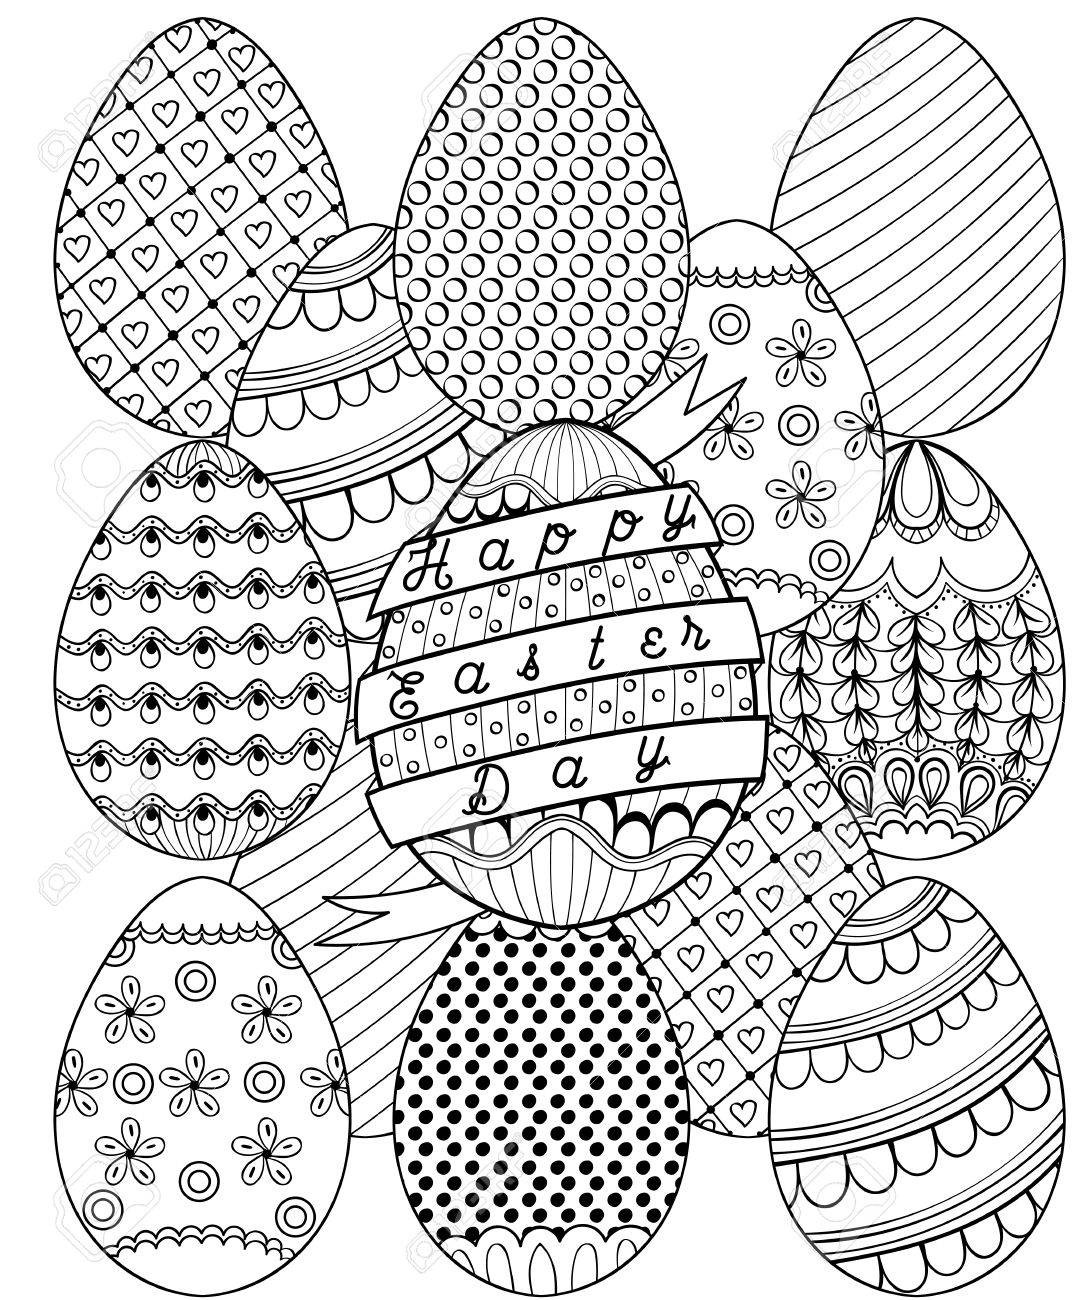 1083x1300 Hand Drawn Artistic Easter Eggs Pattern For Adult